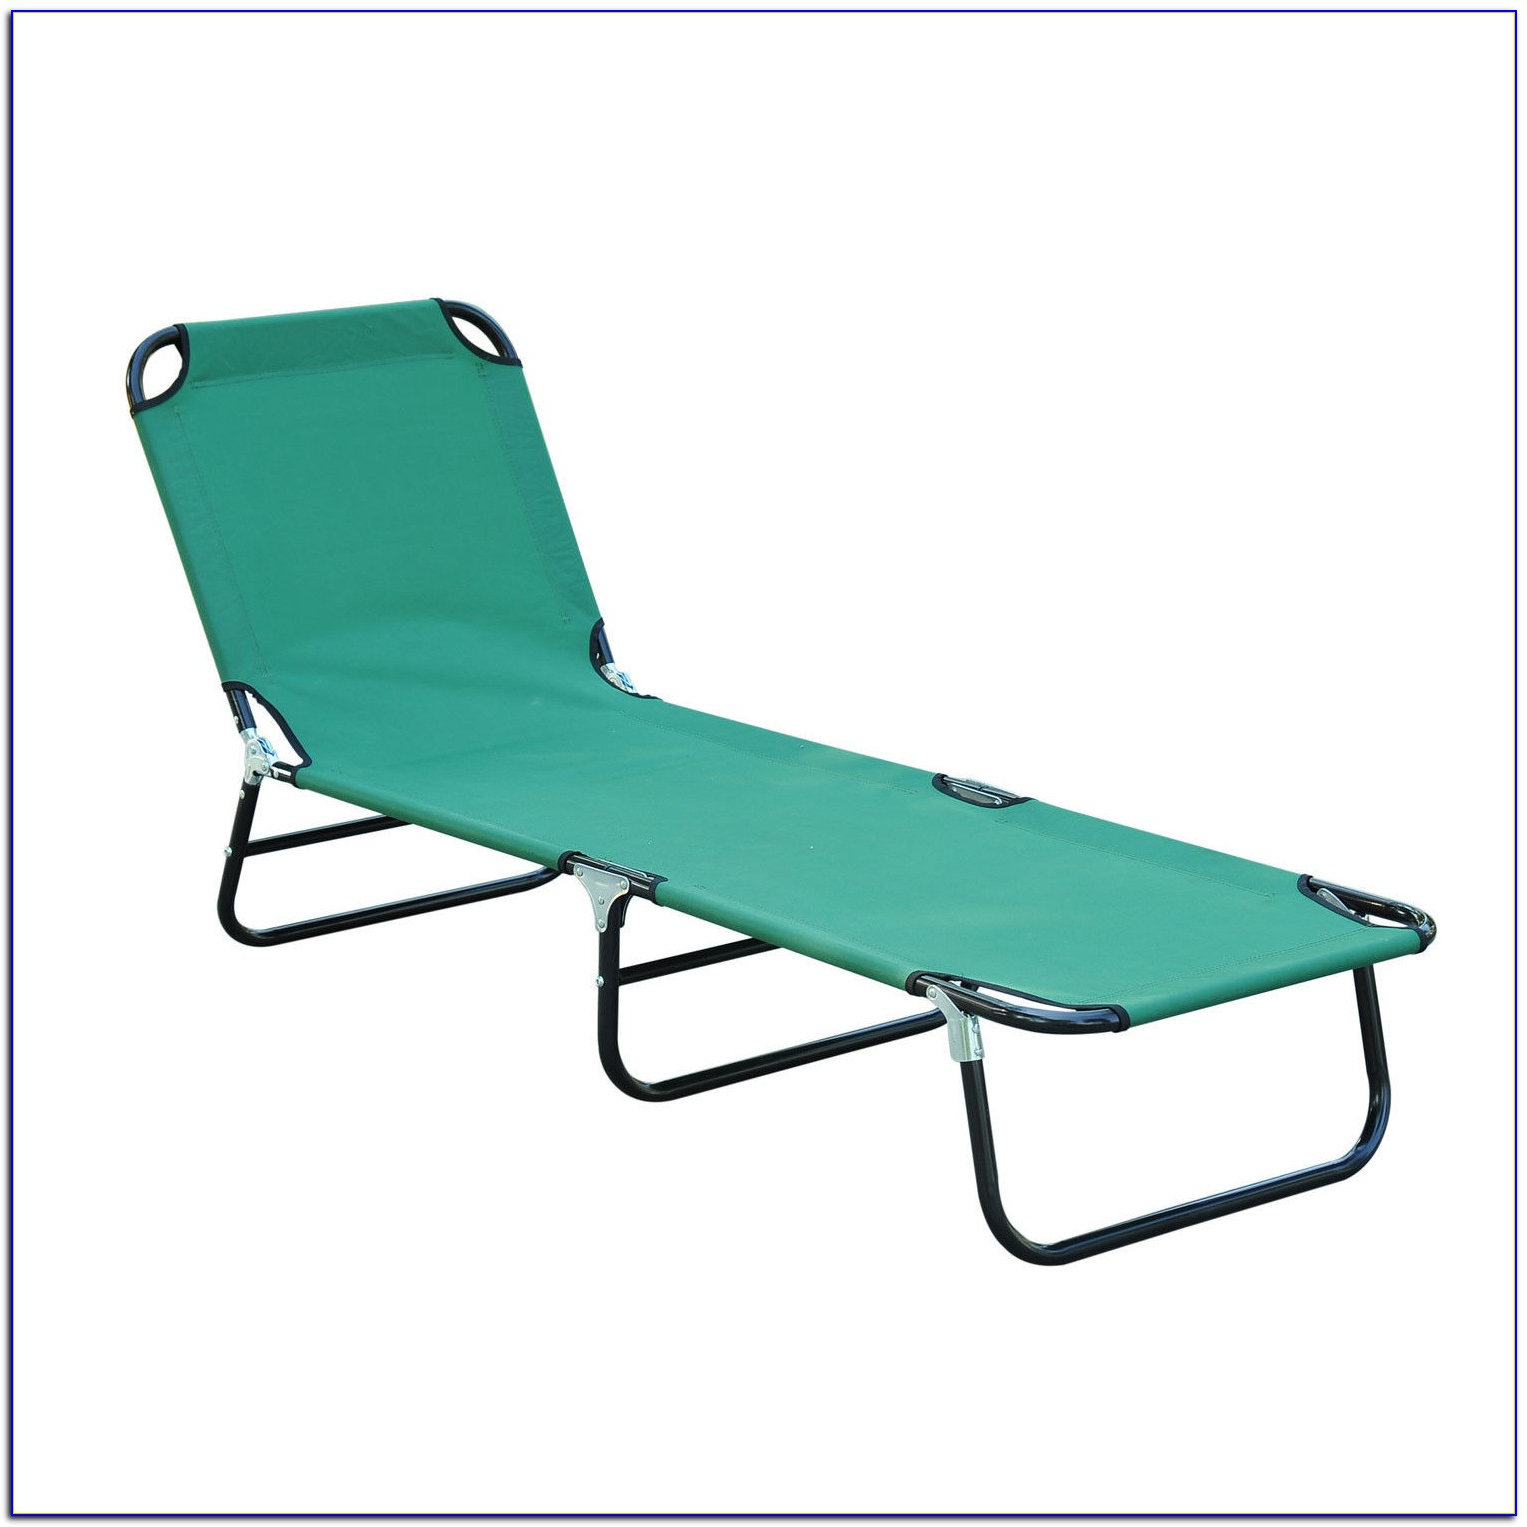 Folding Patio Lounge Beach Chairs With Canopy With Regard To Most Recently Released Folding Beach Lounge Chair With Footrest Chairs Home Plastic (View 23 of 25)